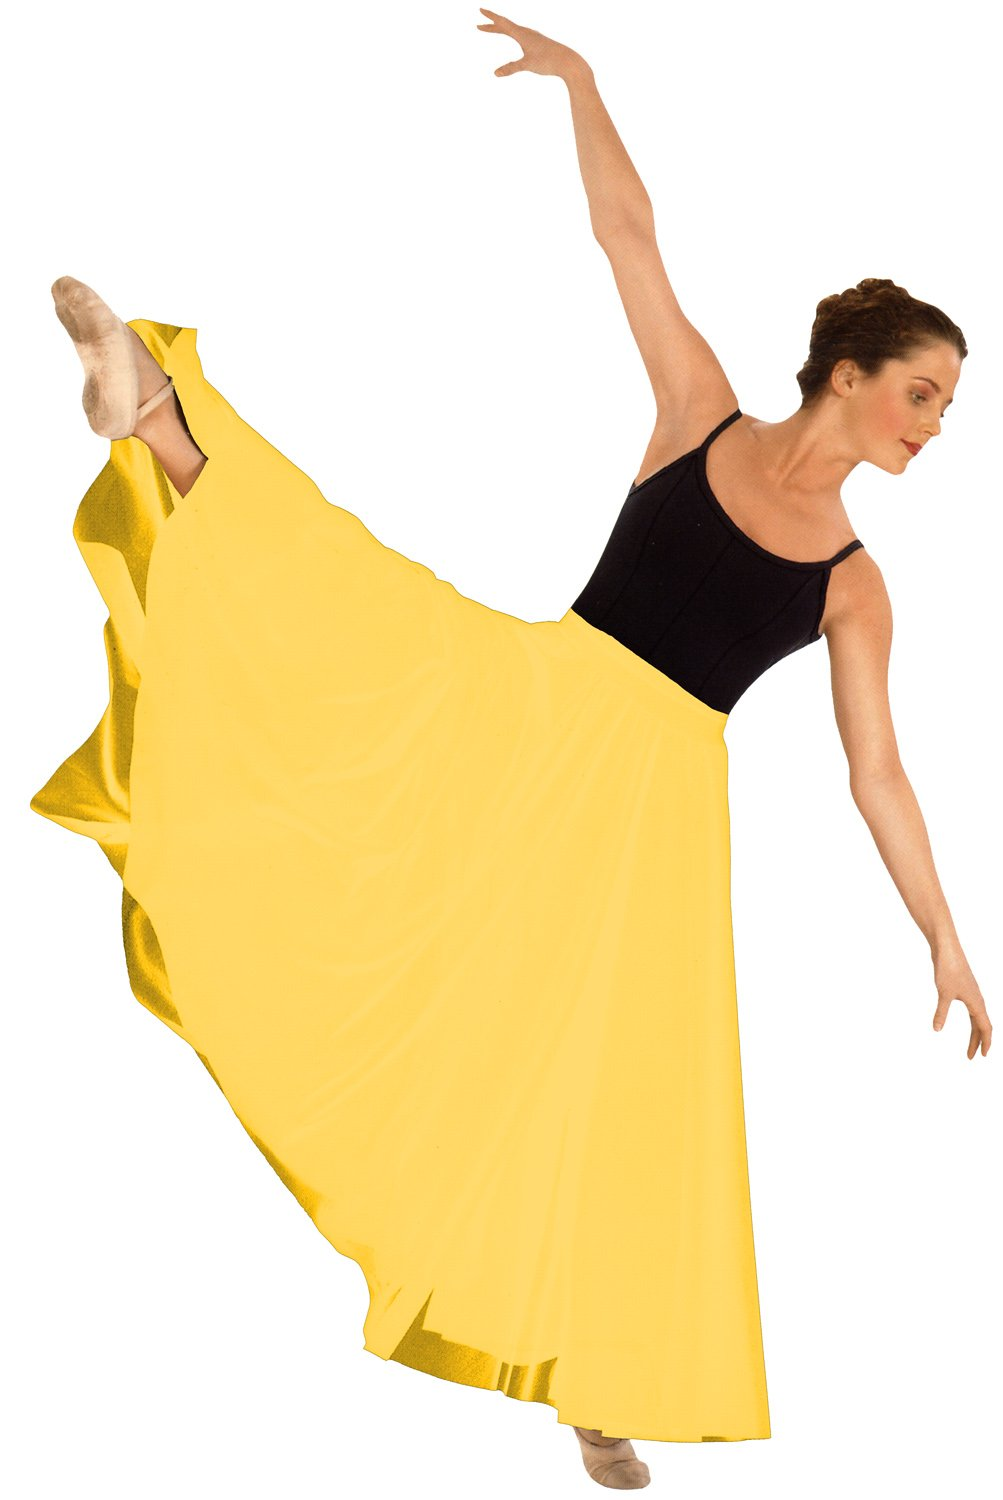 Eurotard 13674 Adult Triple Panel Lyrical Skirt,Yellow,One Size Fits All by Eurotard